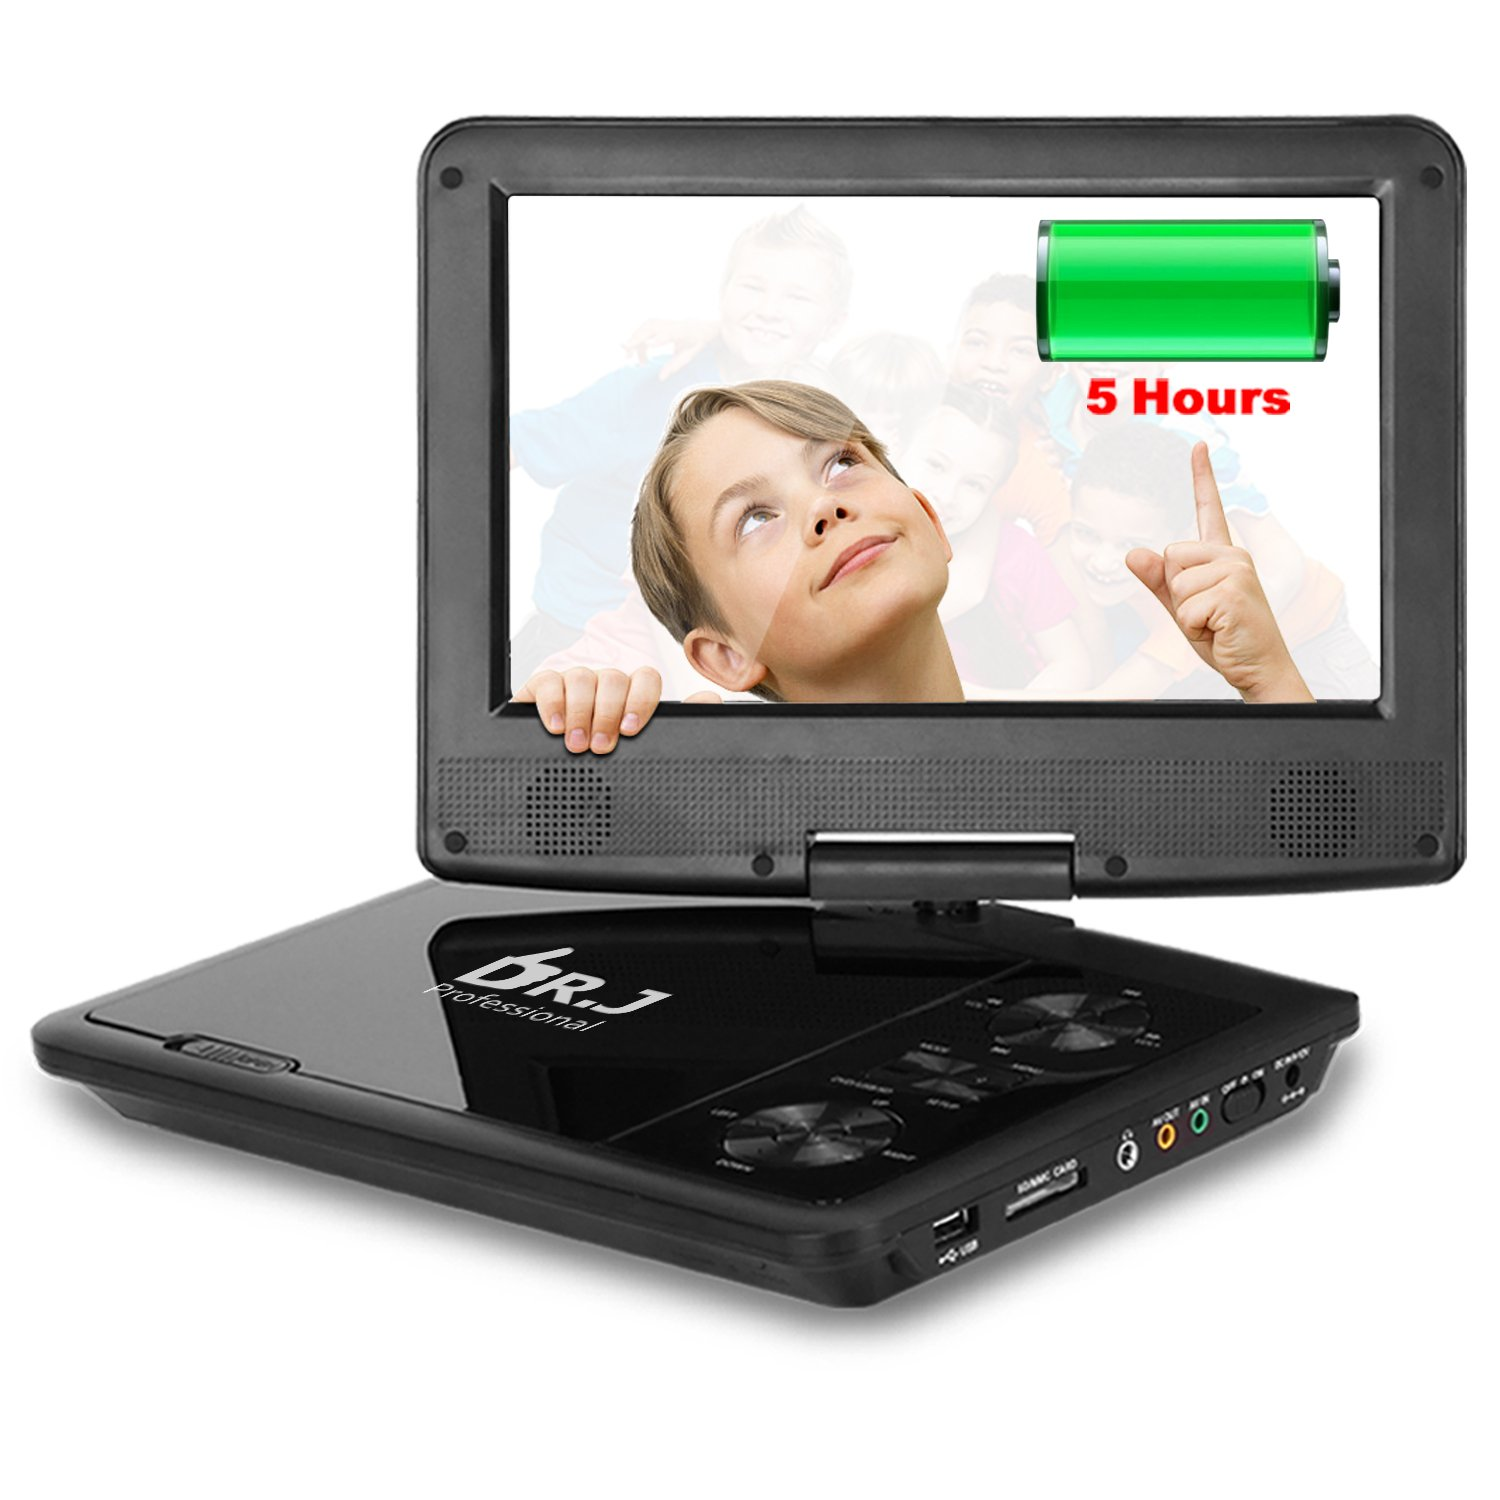 THZY 5 Hours 9.5 inch Swivel Screen Portable DVD Player With Built-In Rechargeable Battery And USB/SD Card Reader, 5.9'/1.8 m Car Charger And Battery Adapter